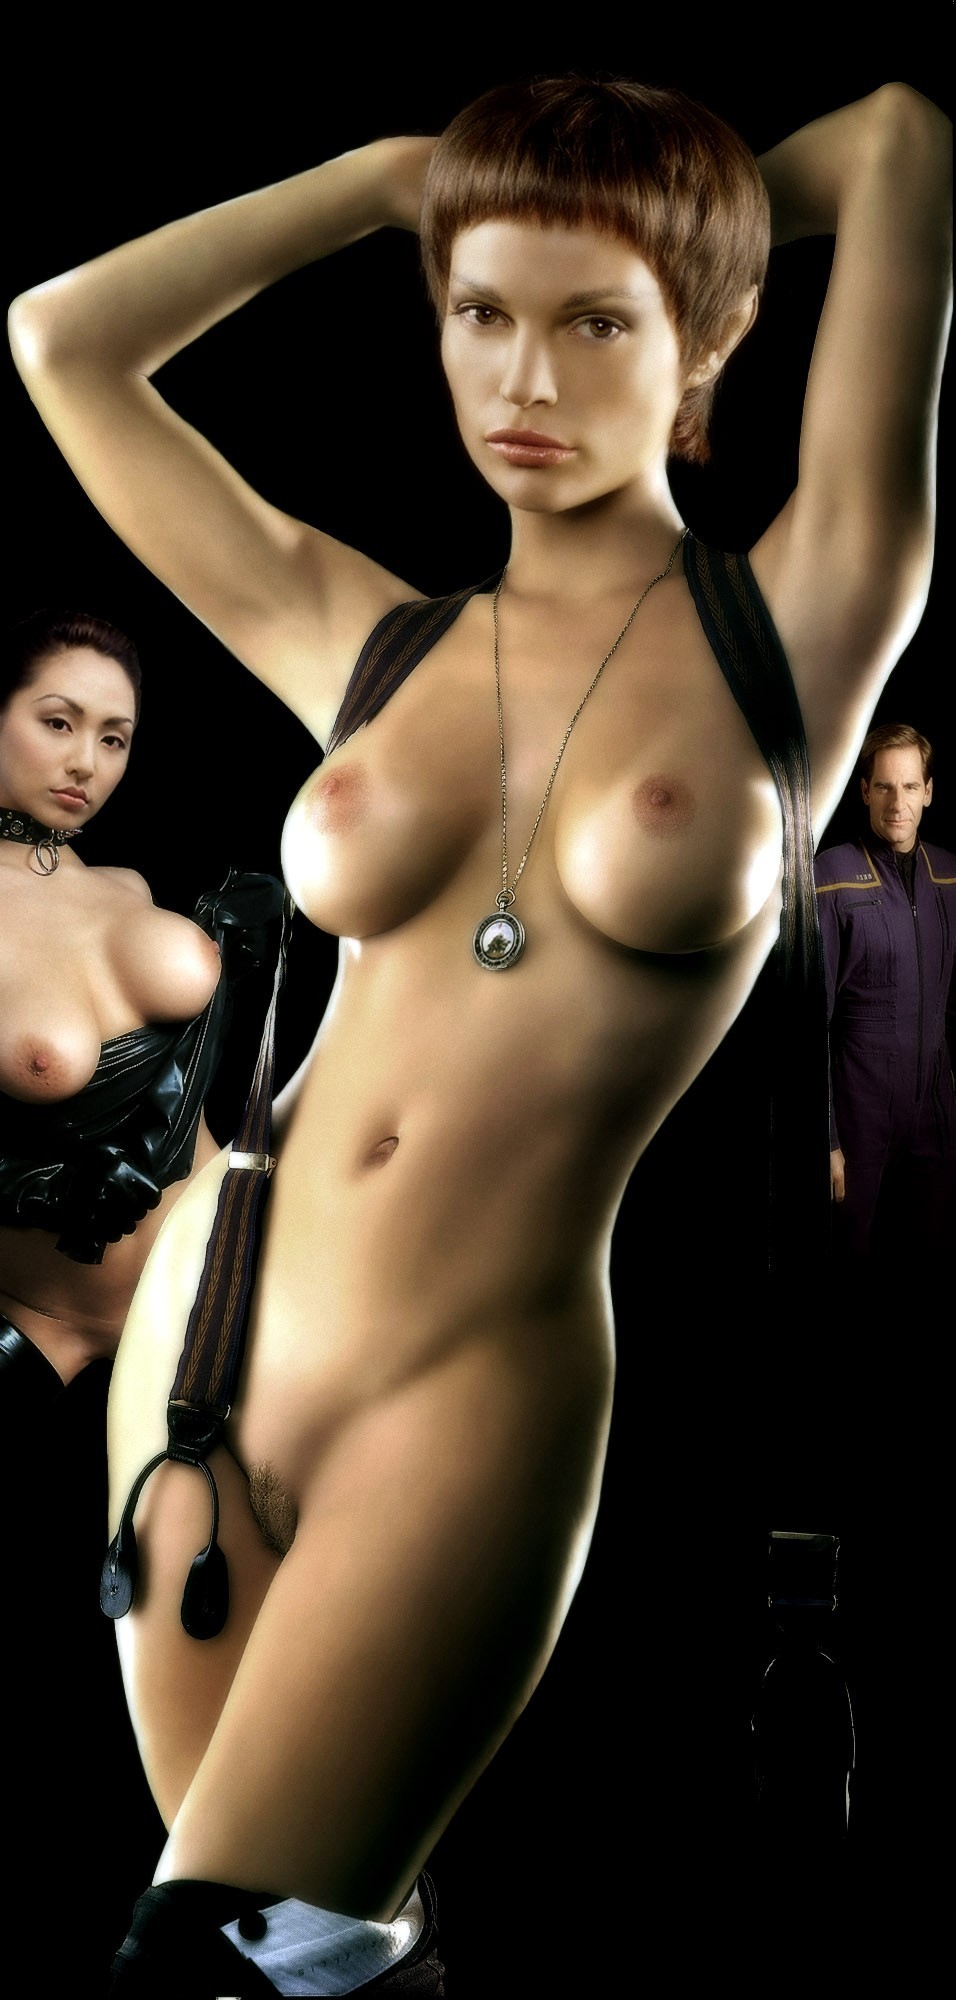 Startrek naked females 10